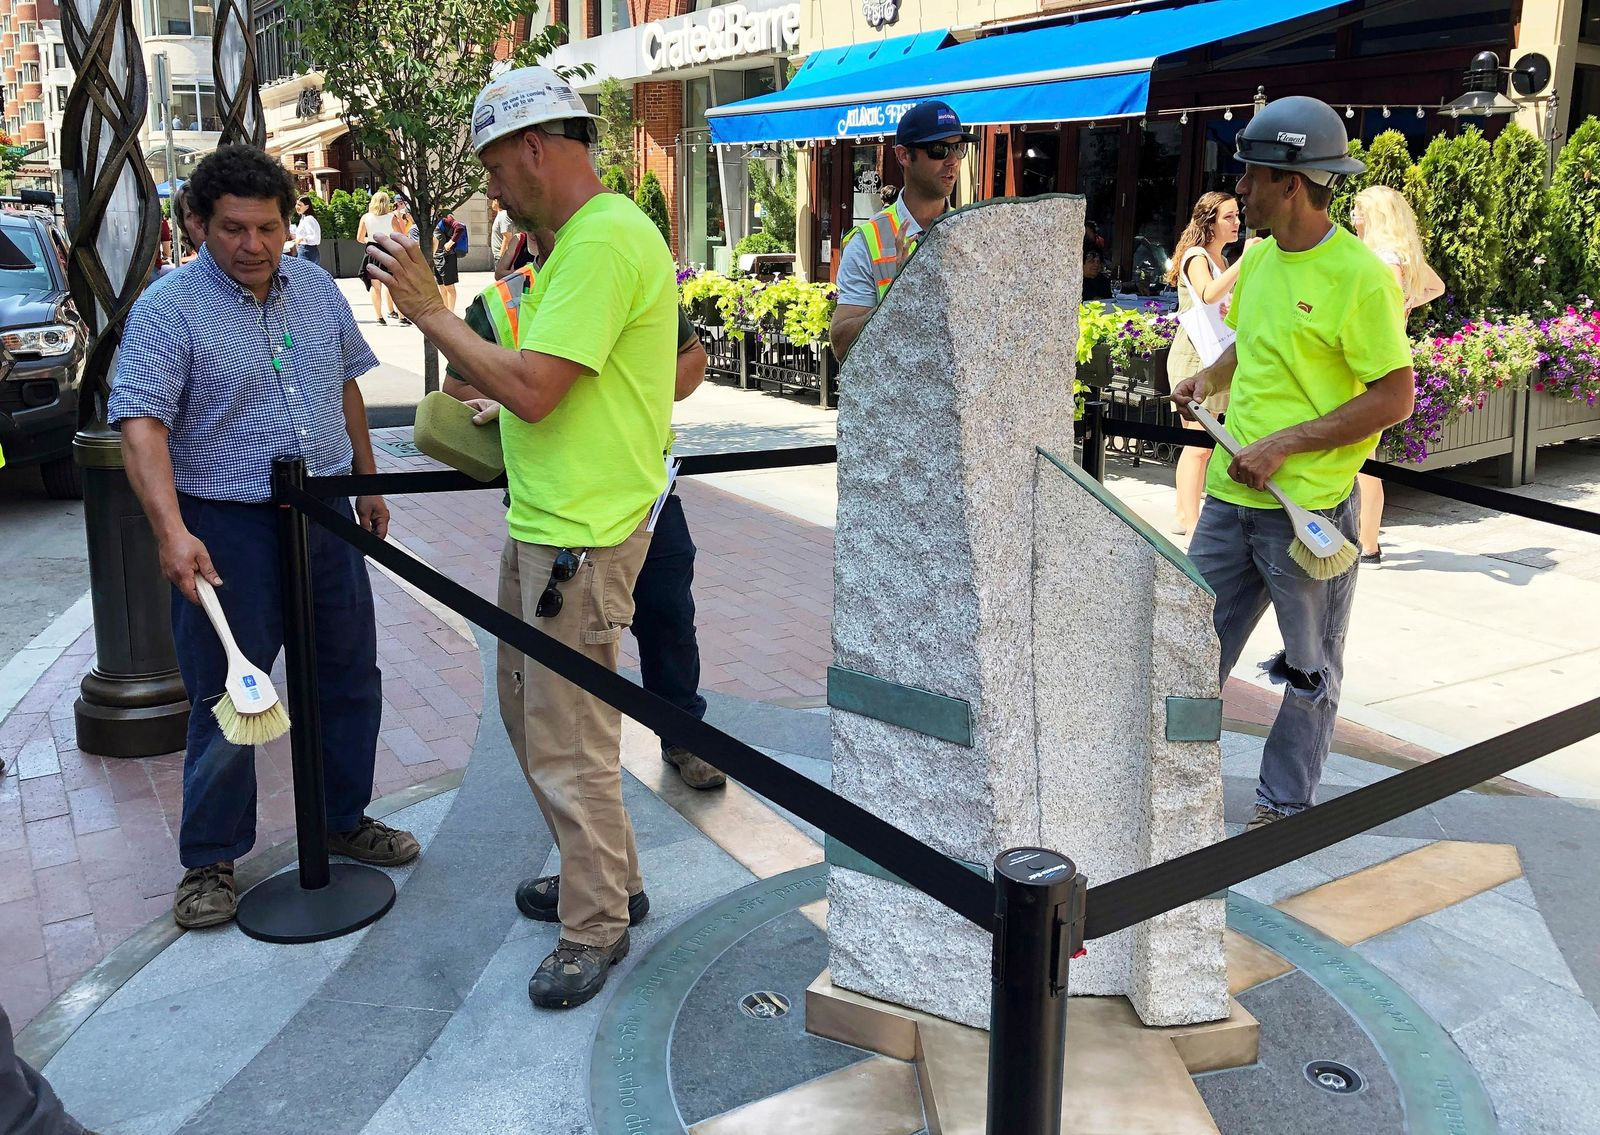 Sculptor Pablo Eduardo, left, and workers make final touches to stone pillars stand along Boylston Street after installation was finished, Monday, Aug. 19, 2019, in Boston to memorialize the Boston Marathon bombing victims at the sites where they were killed. (AP Photo/Philip Marcelo)